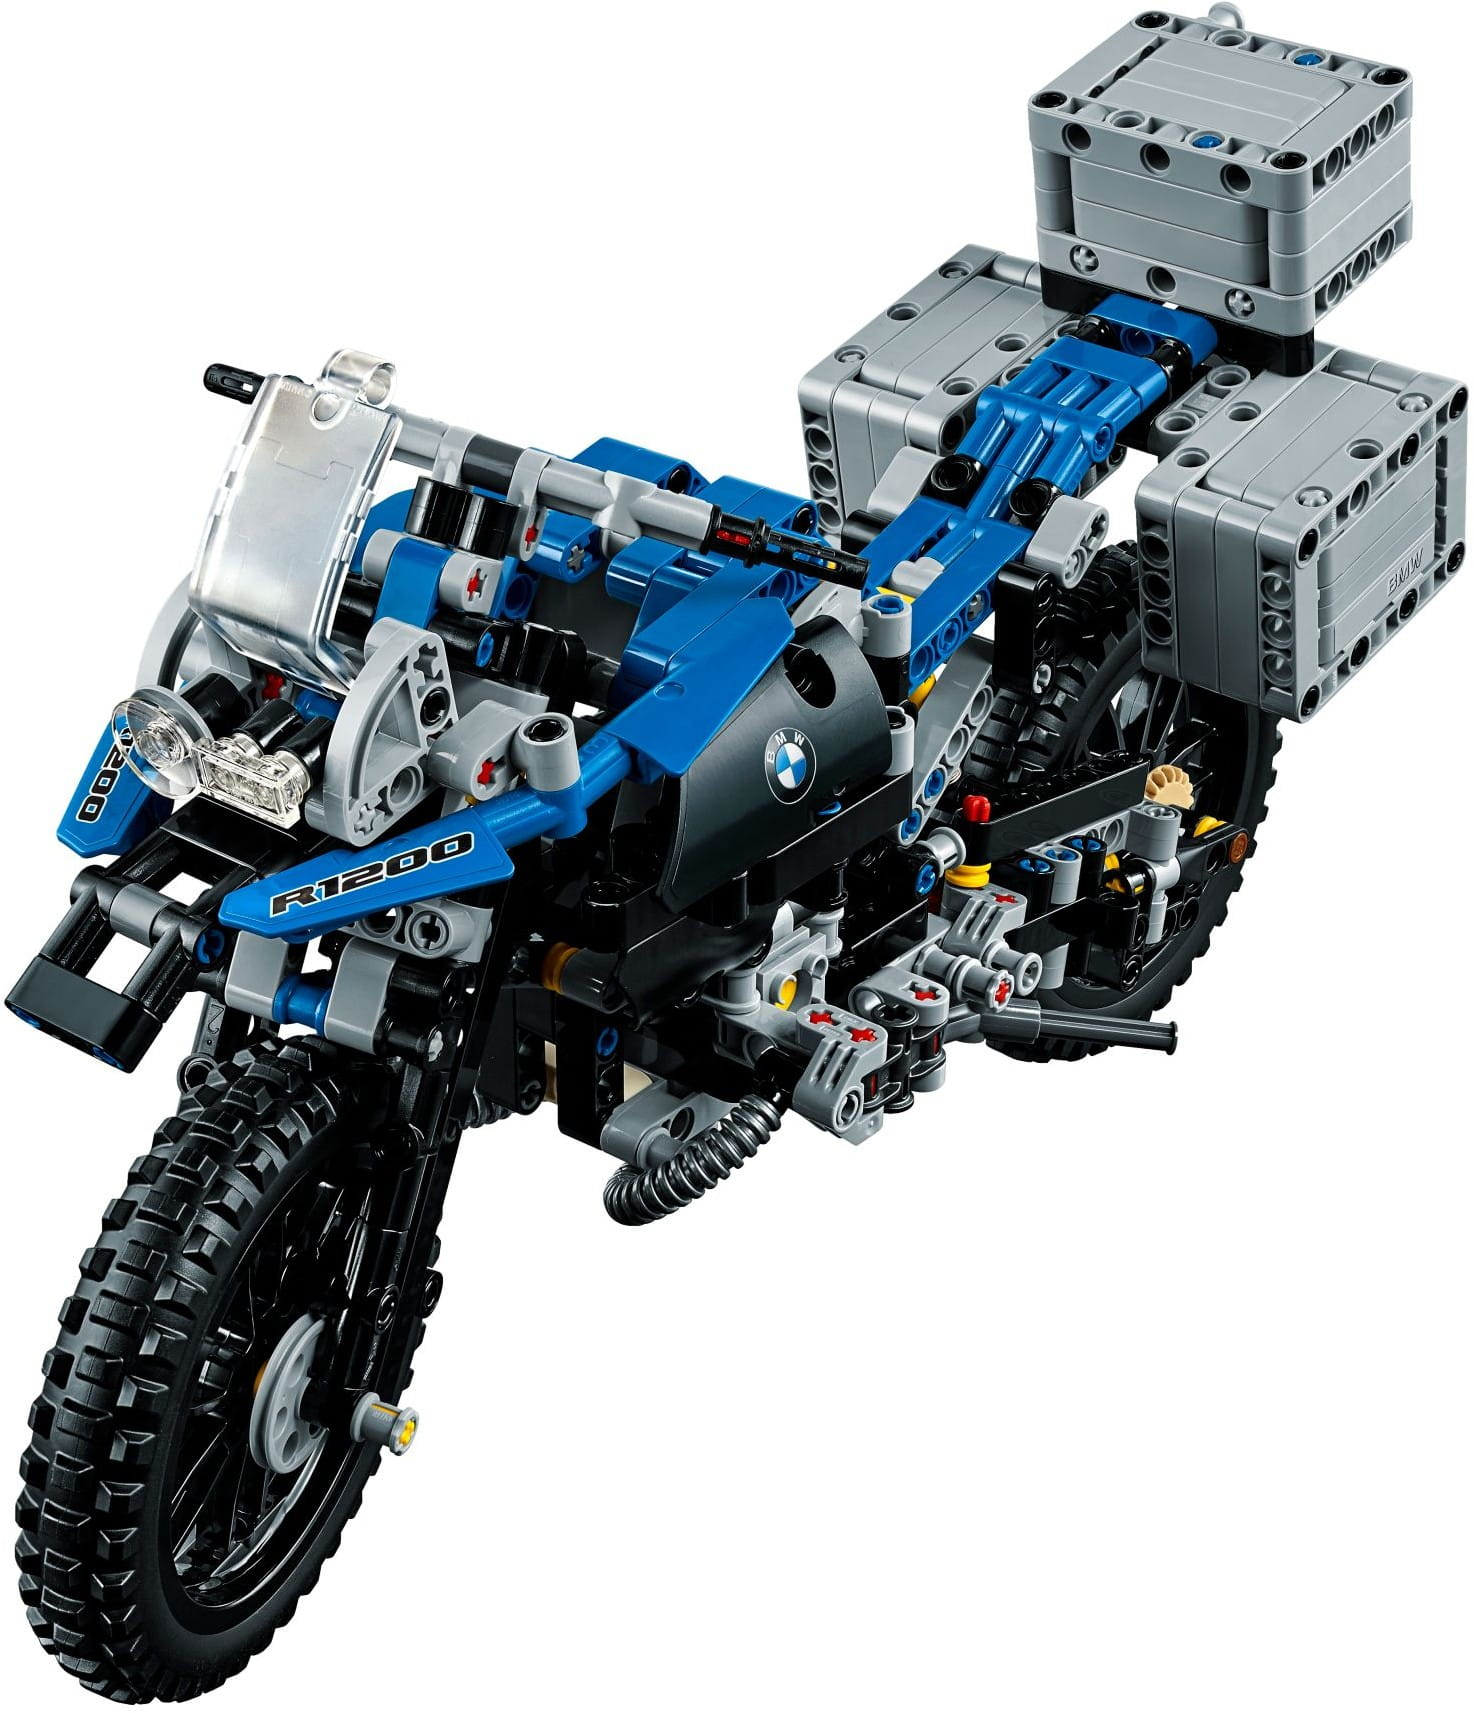 LEGO 42063 Technic BMW R 1200GS